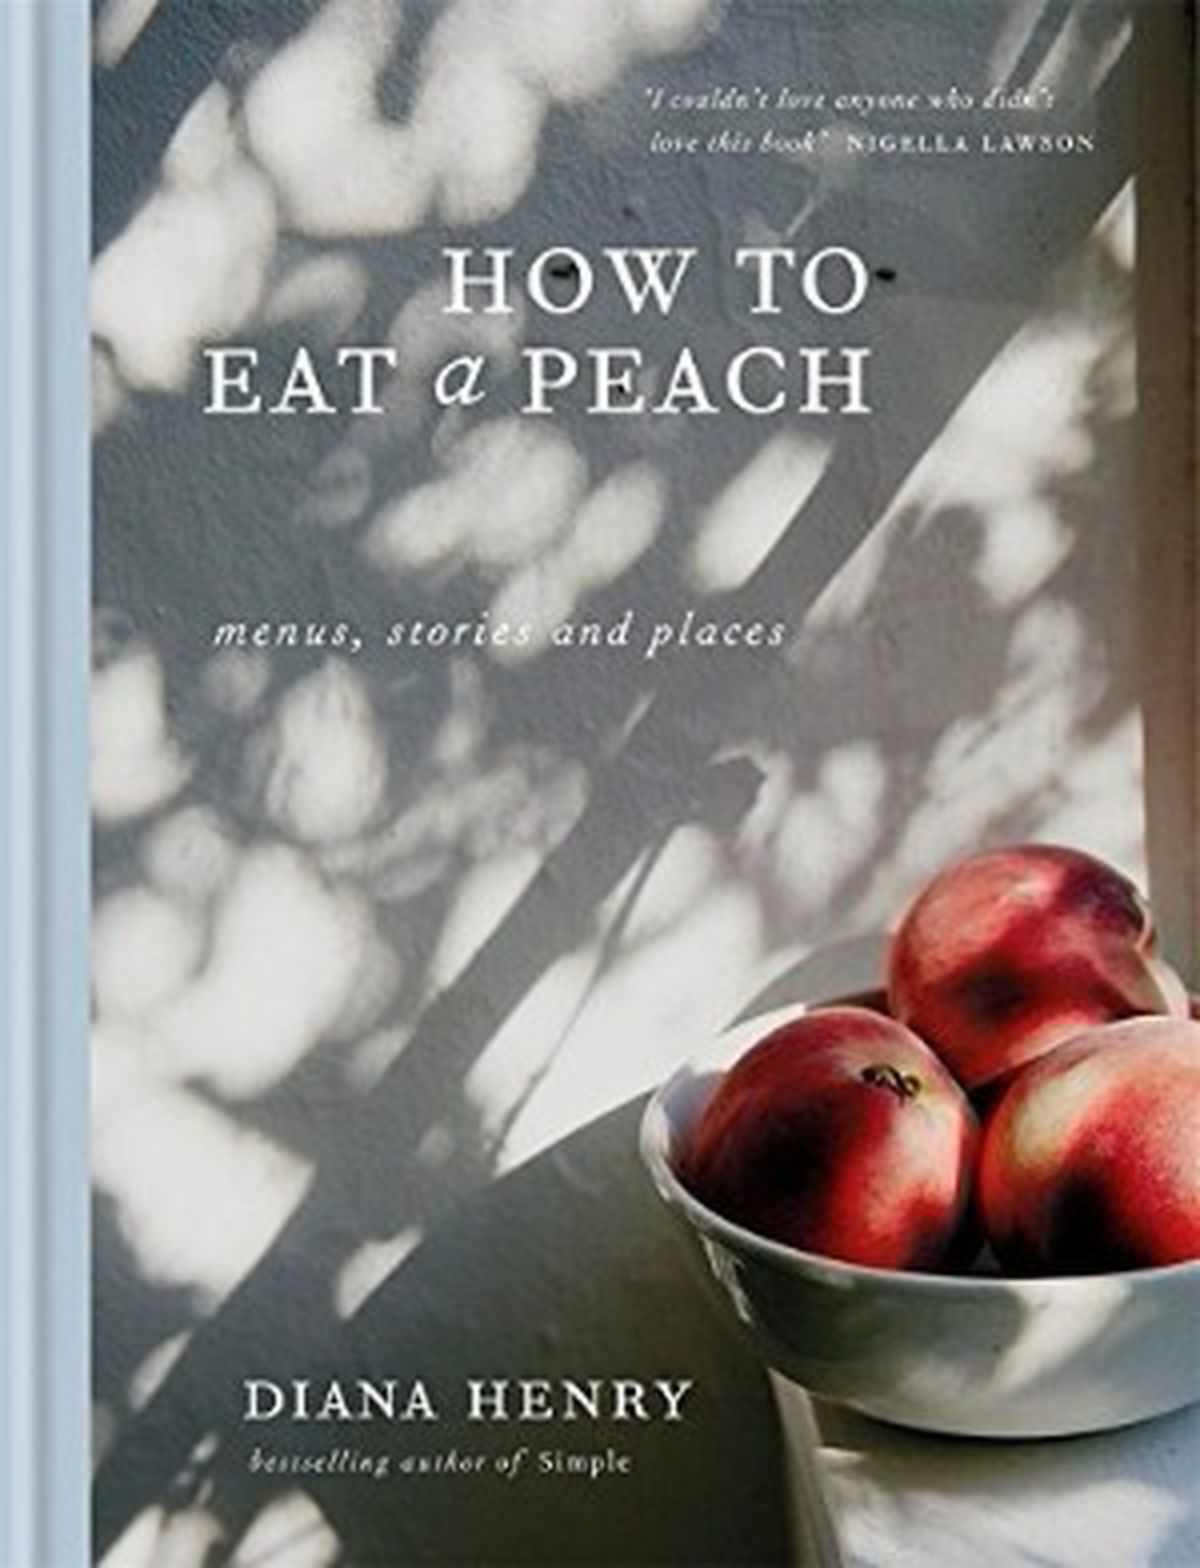 Best new cookbooks spring 2018 eater how to eat a peach forumfinder Image collections